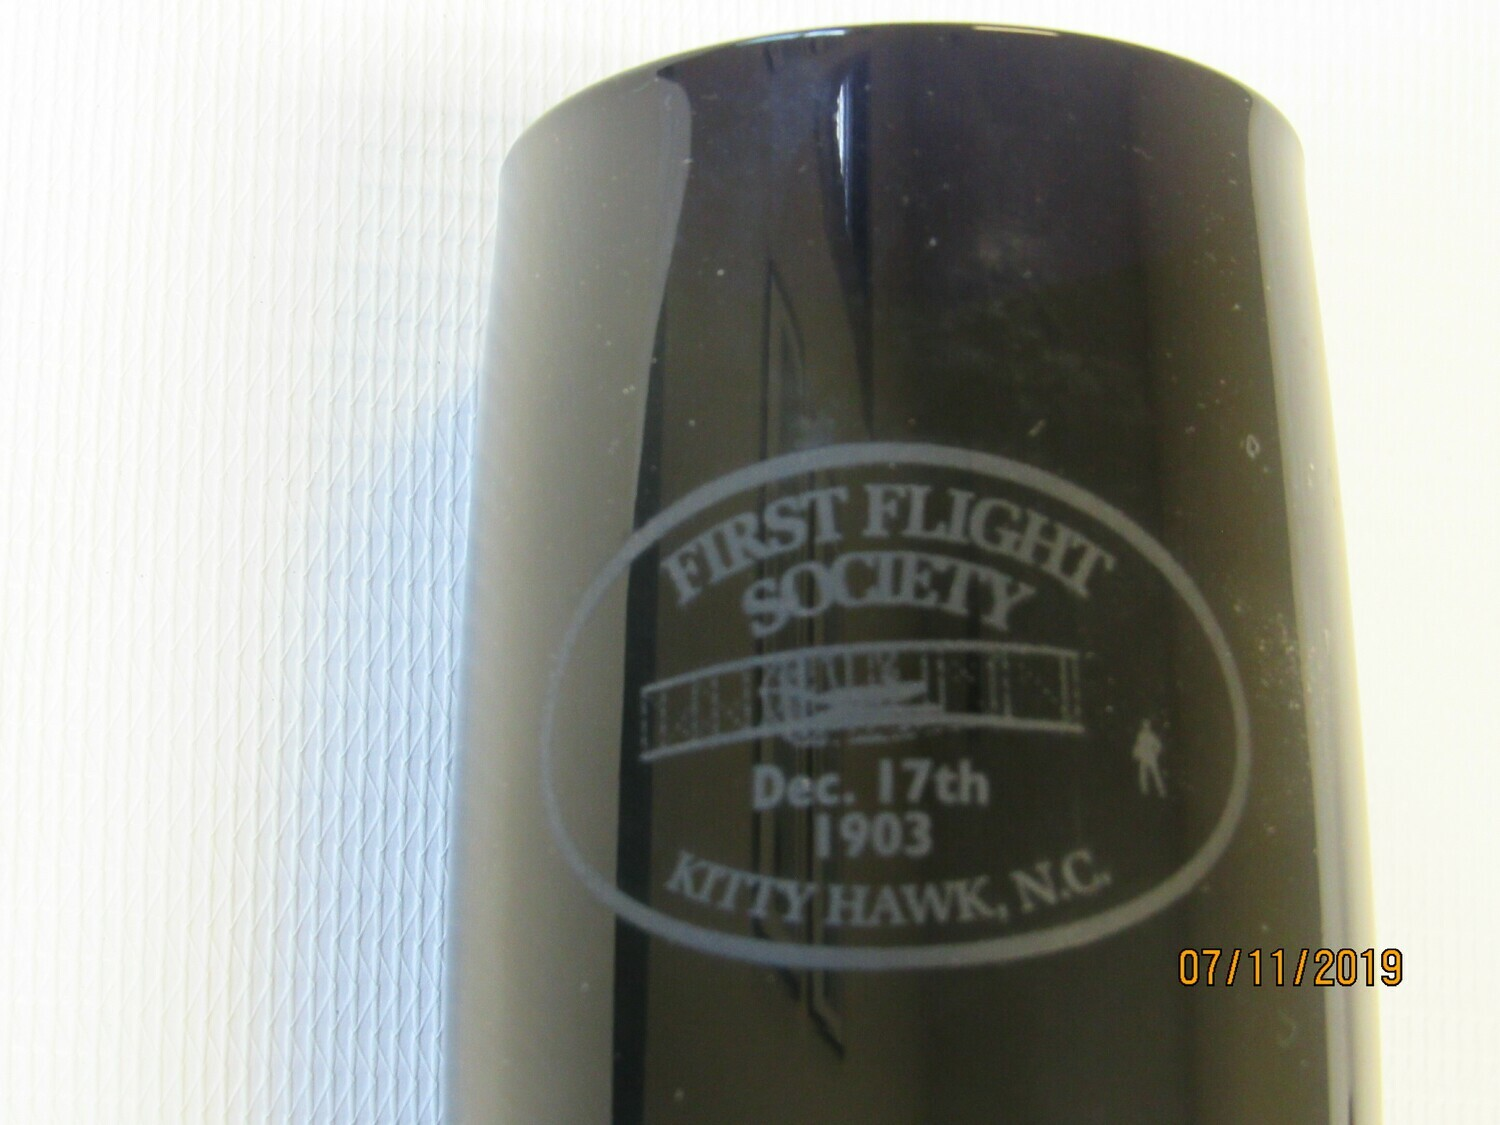 First Flight Society Champagne Glass, Black